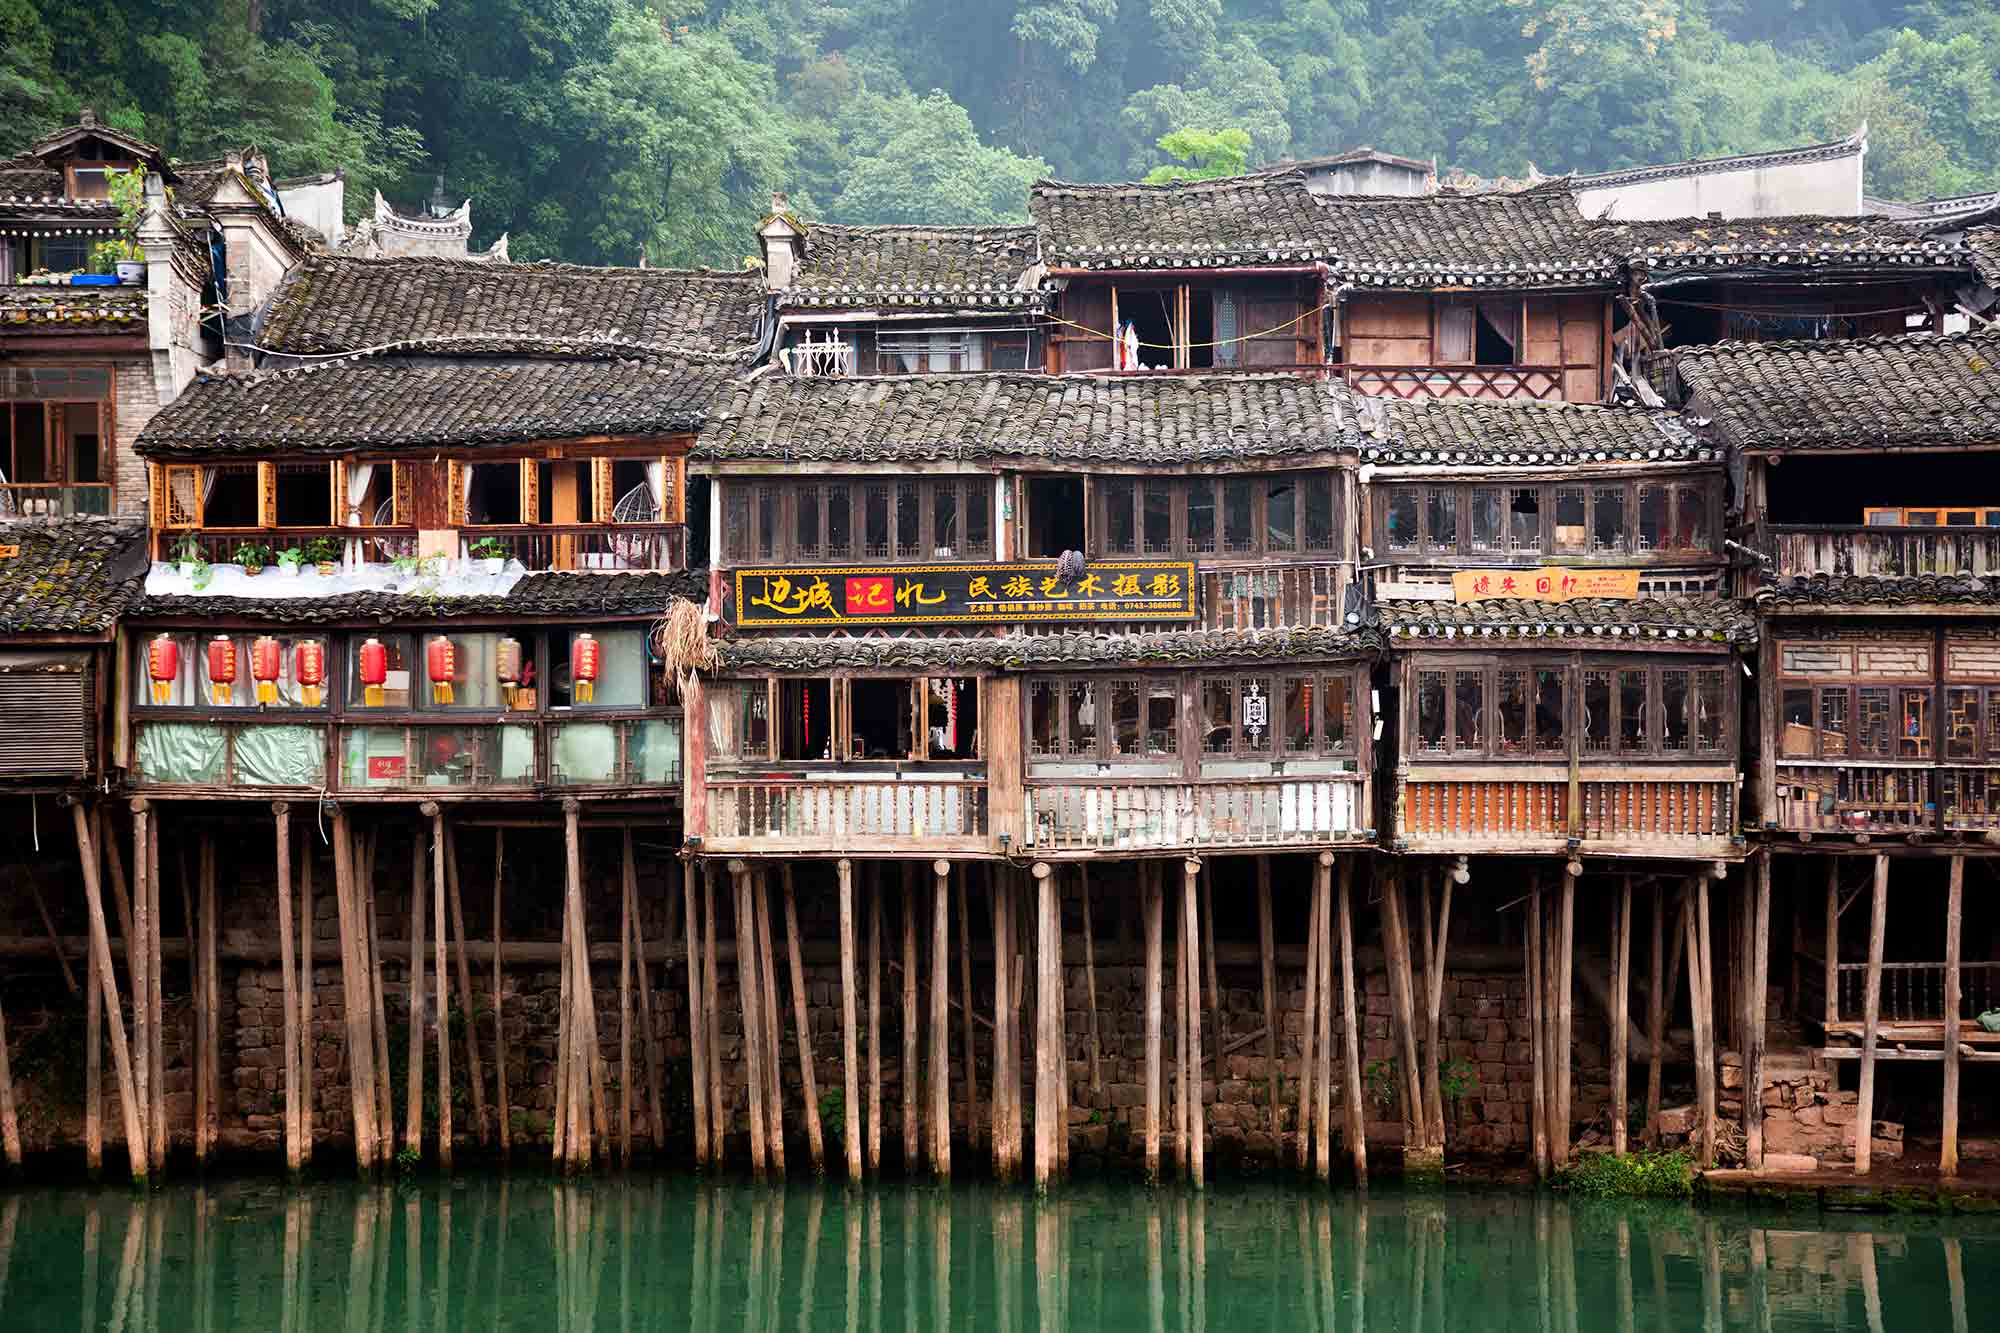 Fenghuang Town is a wonderful example of what villages were like prior to the onset of modernisation. Here dozens of alleys paved with flagstones run between the houses, each showing wear caused by the feet of generations of local people who have used them when going about their daily business. © ULLI MAIER & NISA MAIER